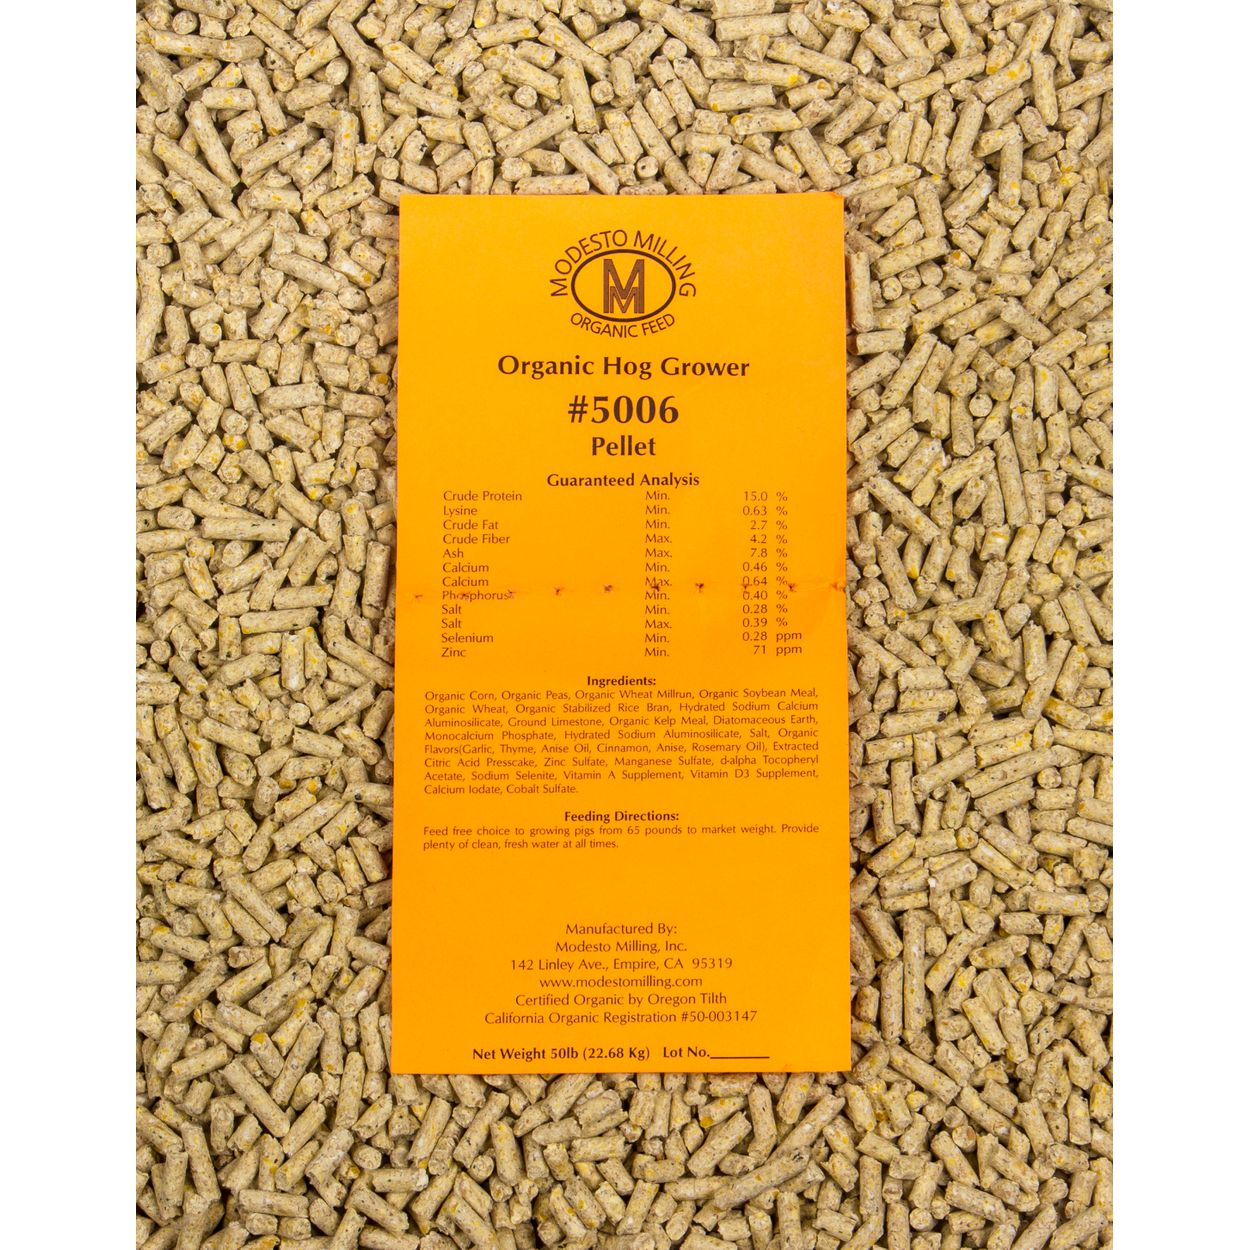 Hog Grower Pellets, Organic, 50 lb